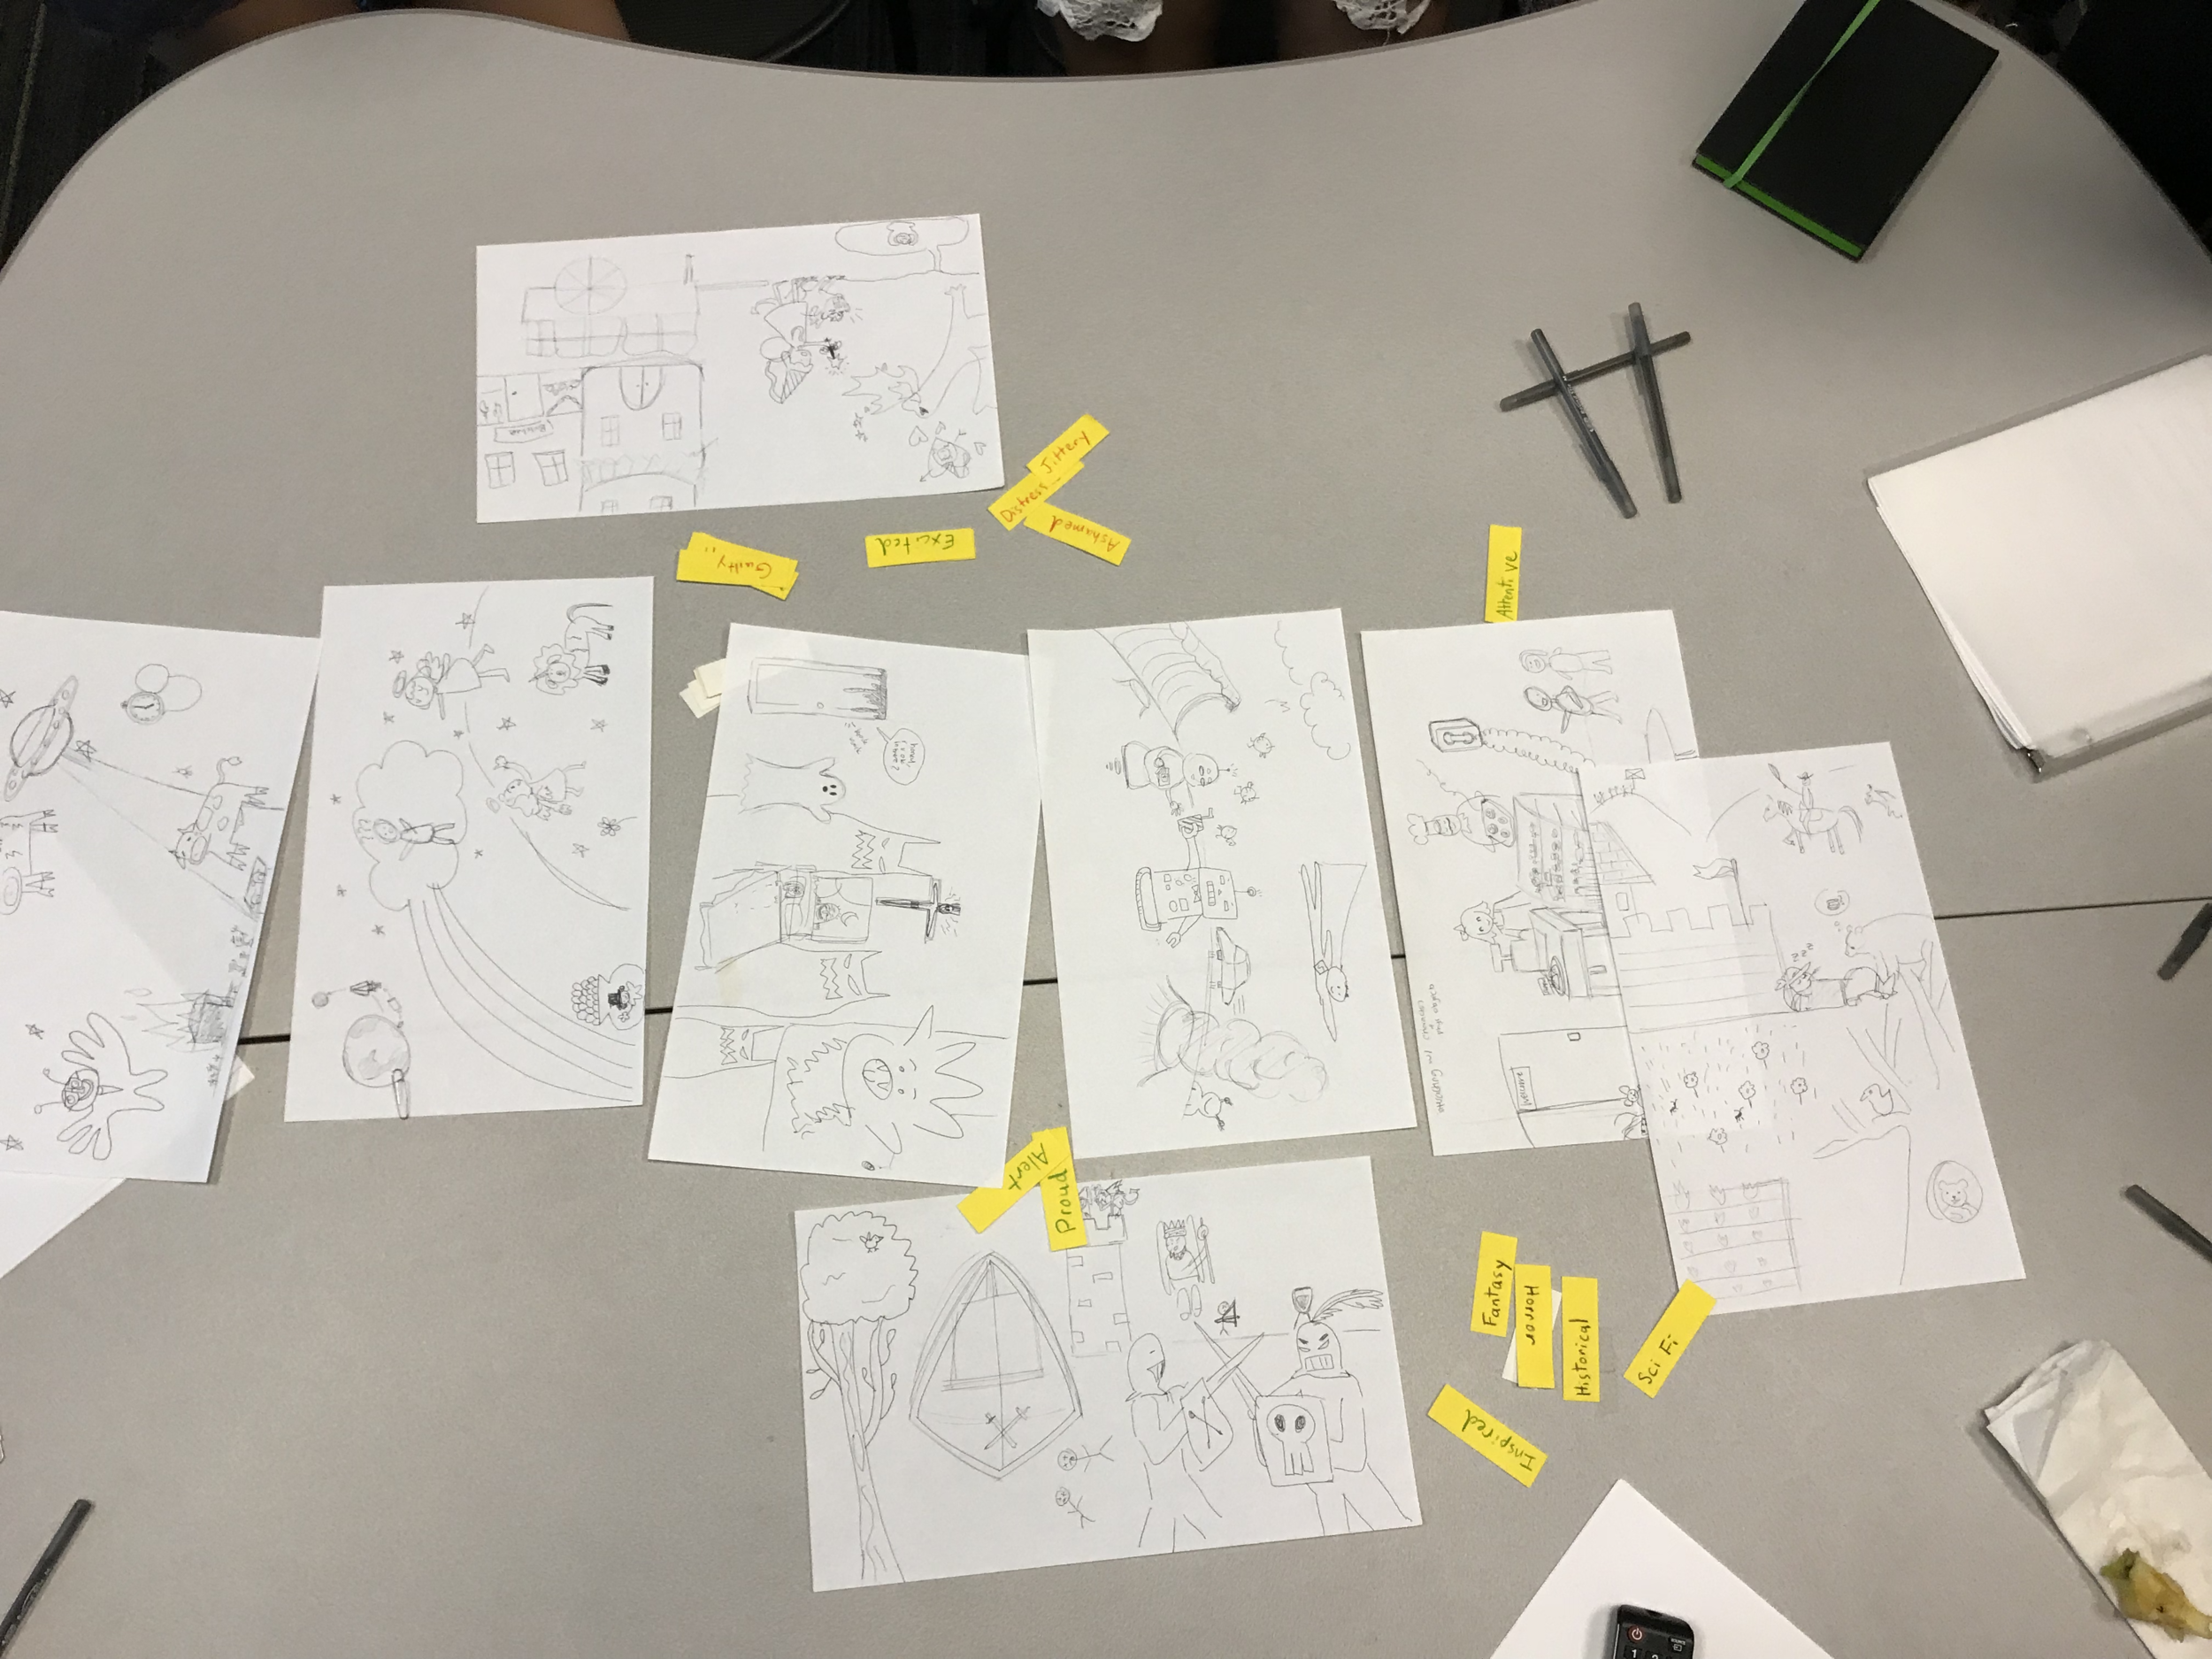 Emotion & Collaborative Illustration, created by several students in the independent study